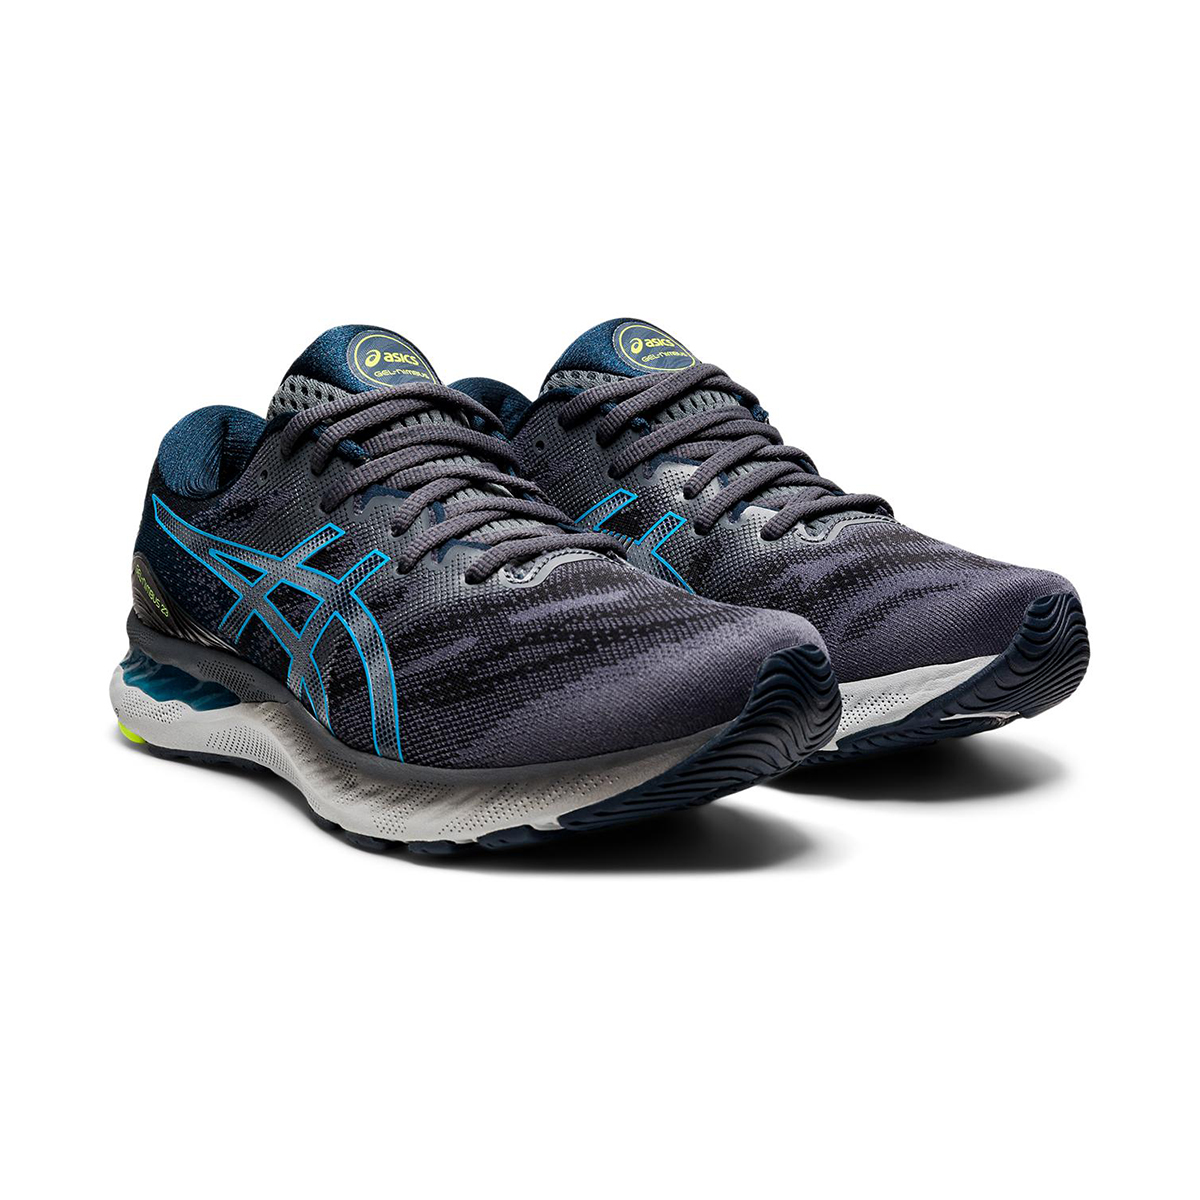 Men's Asics GEL-Nimbus 23 Running Shoe - Color: Carrier Grey/Digital Aqua - Size: 8.5 - Width: Regular, Carrier Grey/Digital Aqua, large, image 3